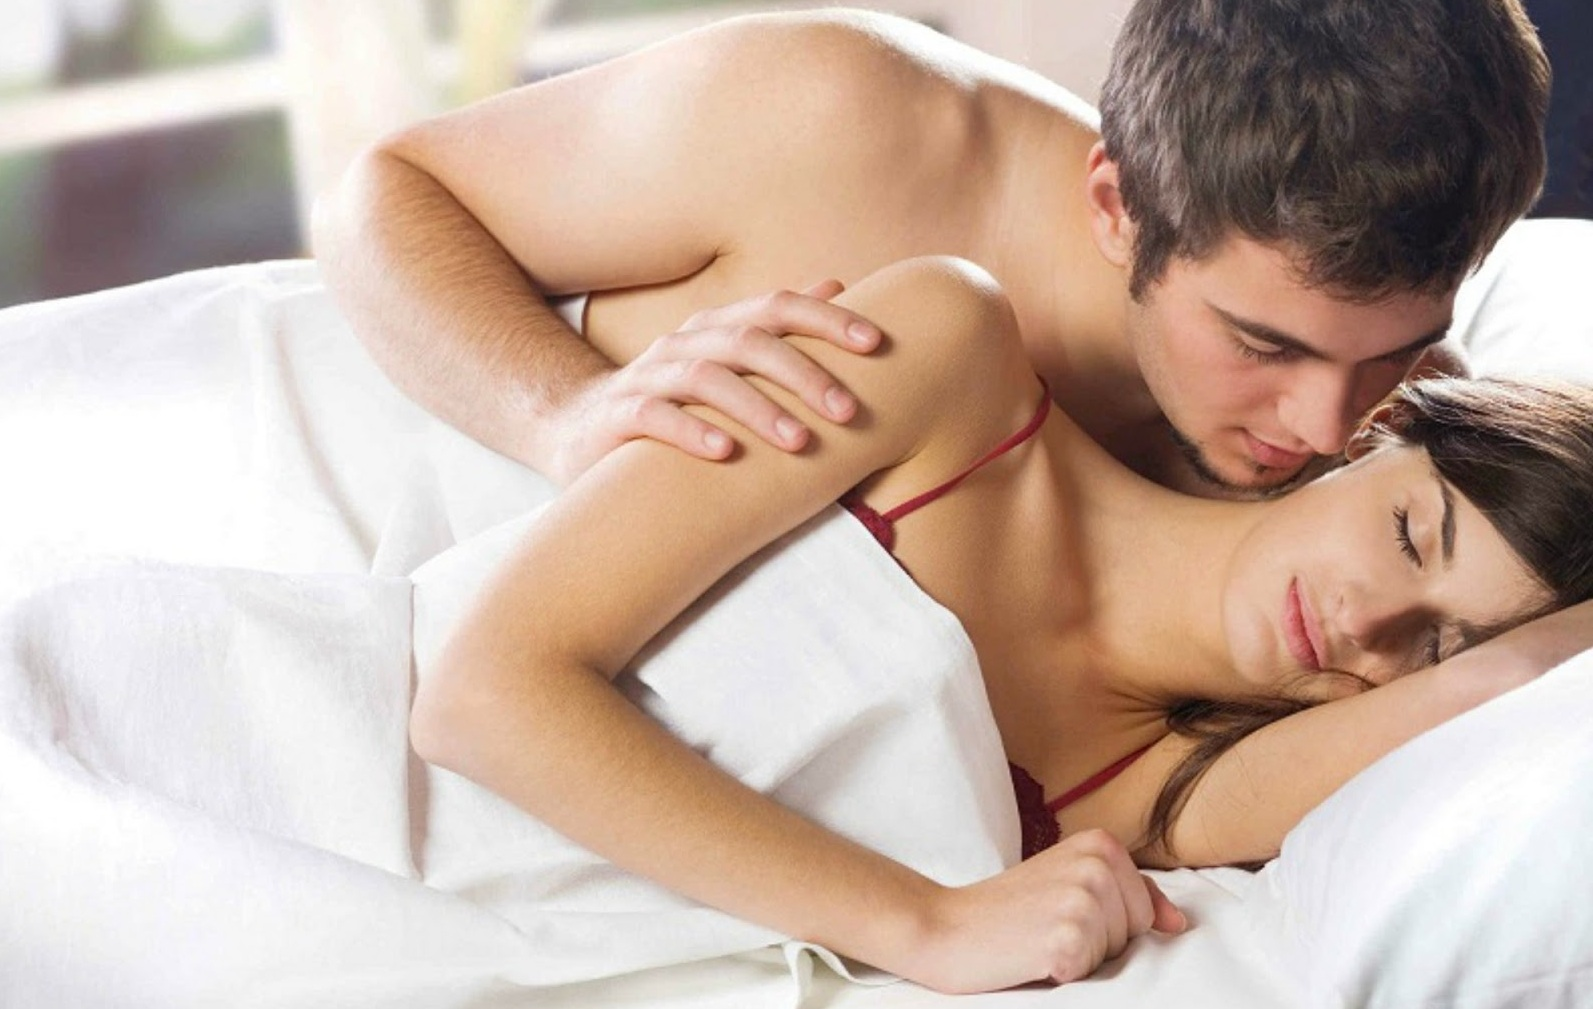 10 Things A Woman Should Never Do For A Man